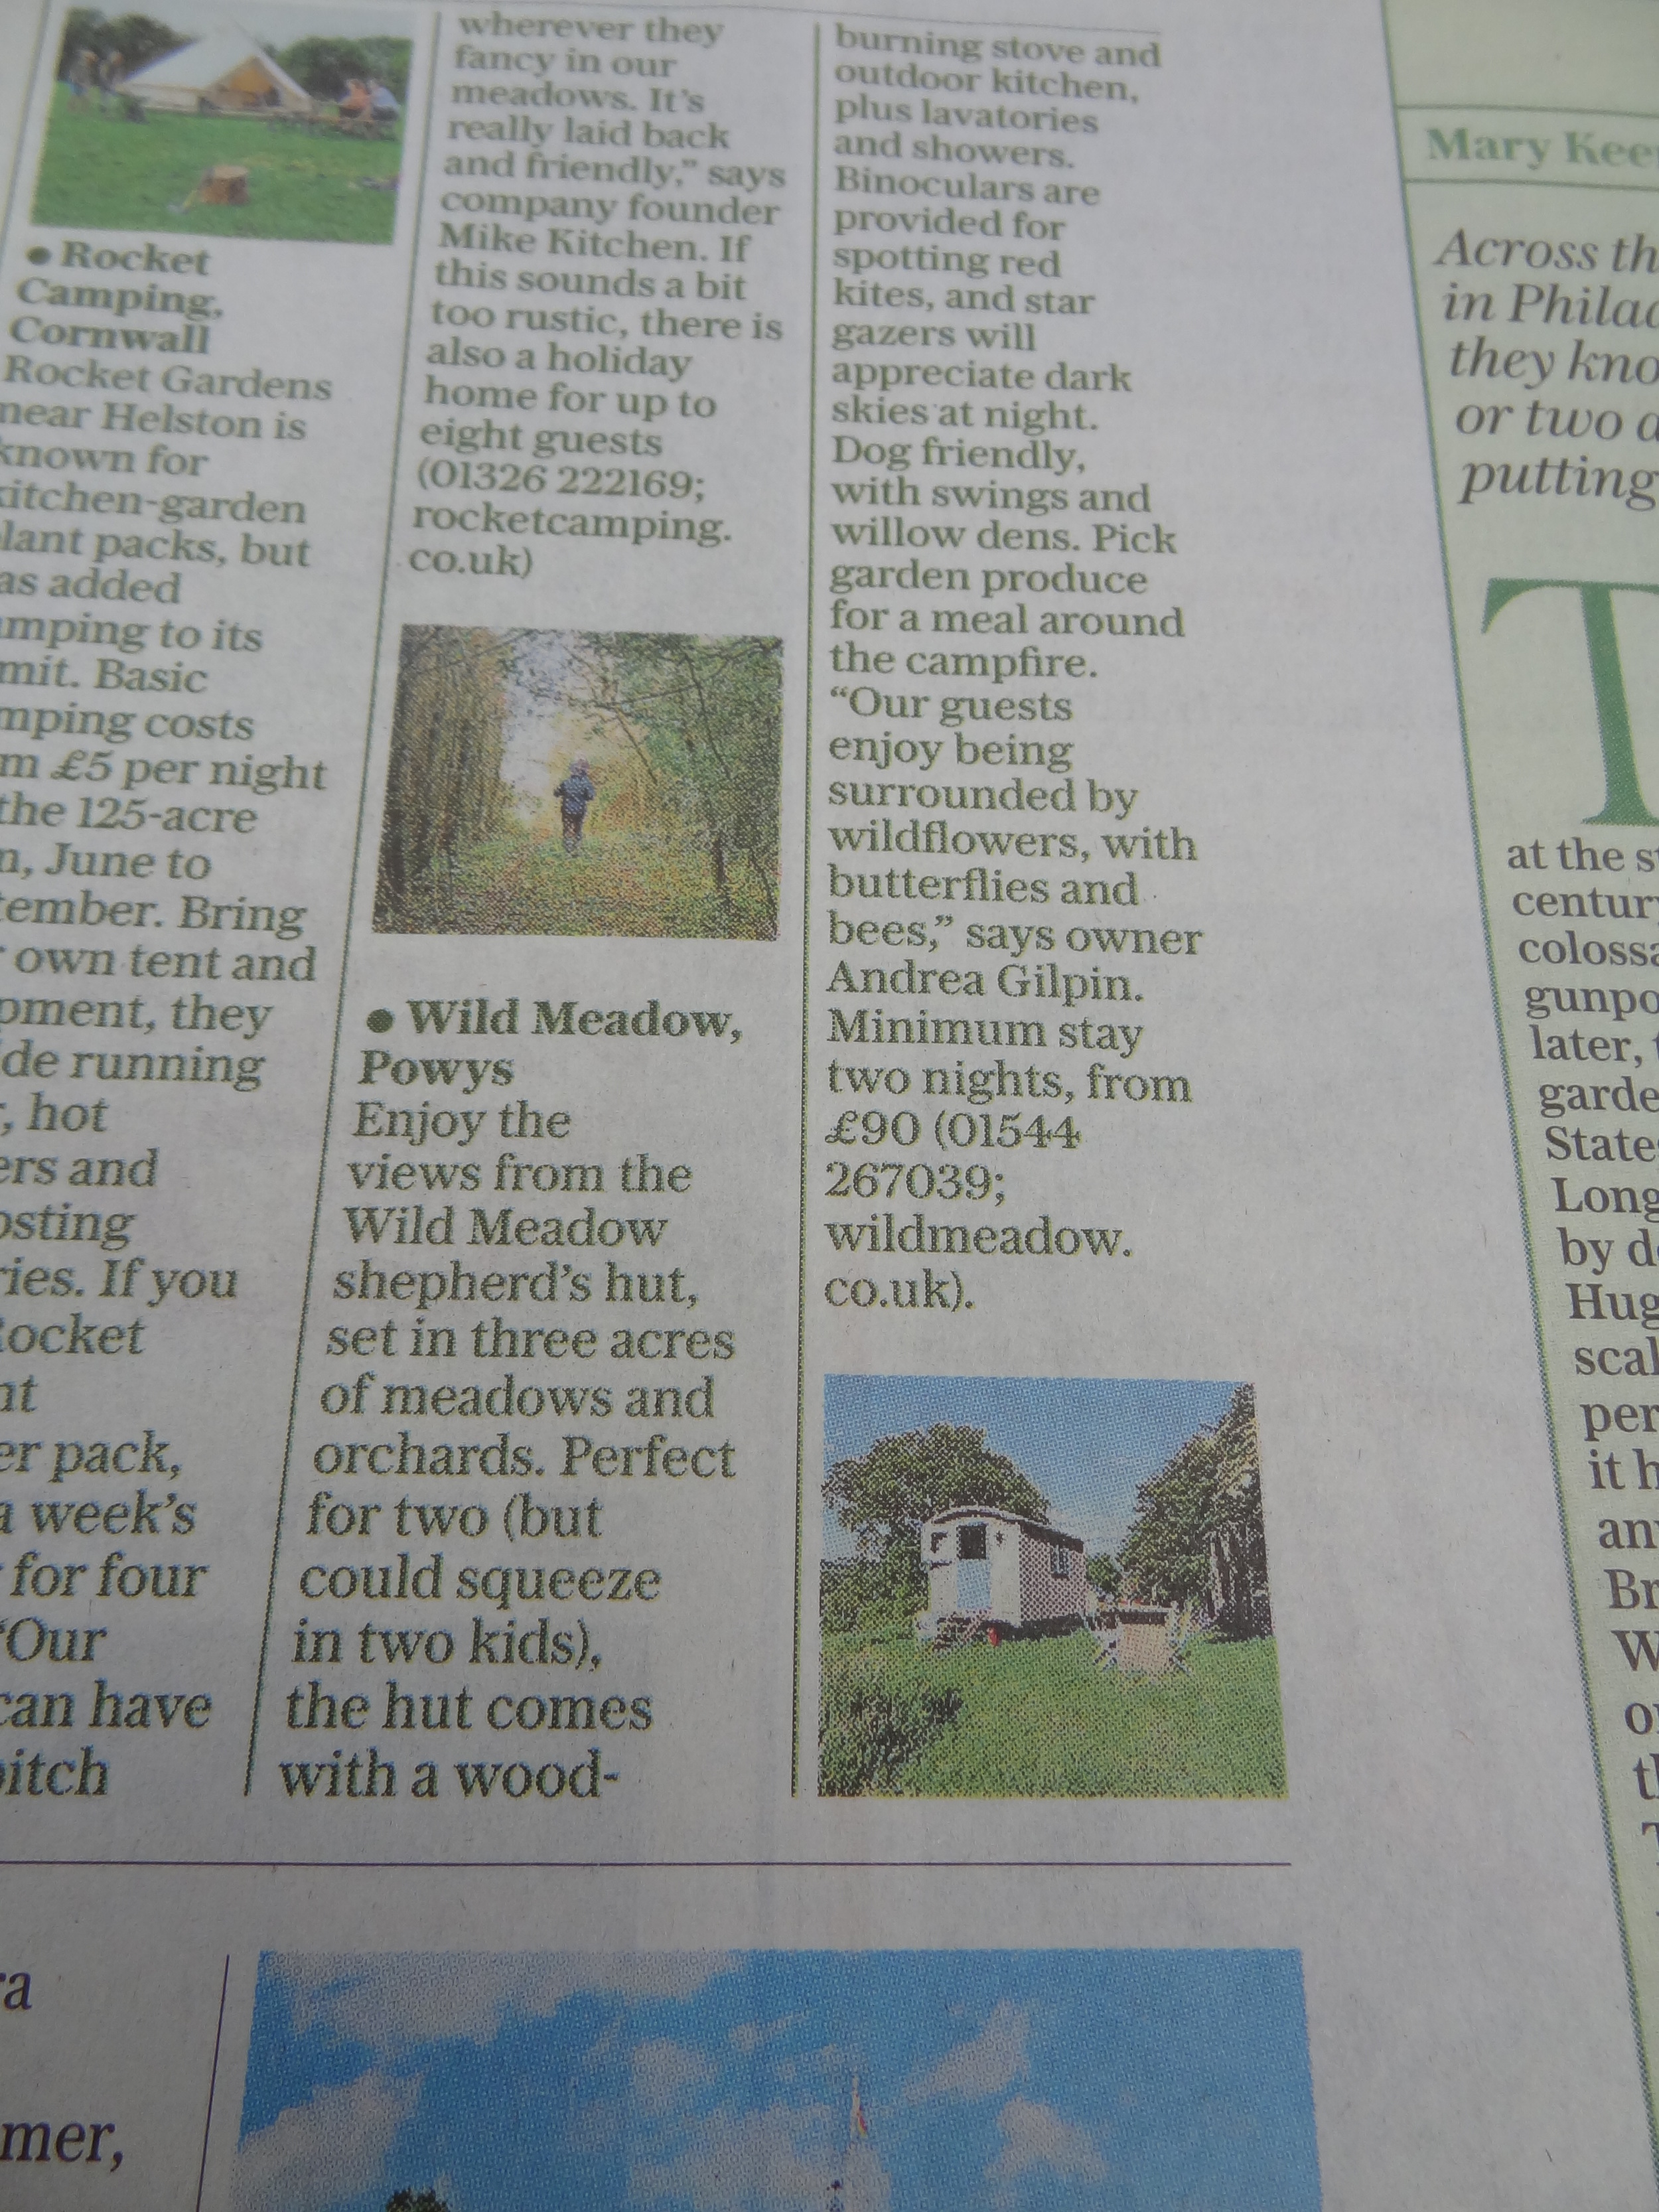 photo of newspaper article featuring the shepherd's hut